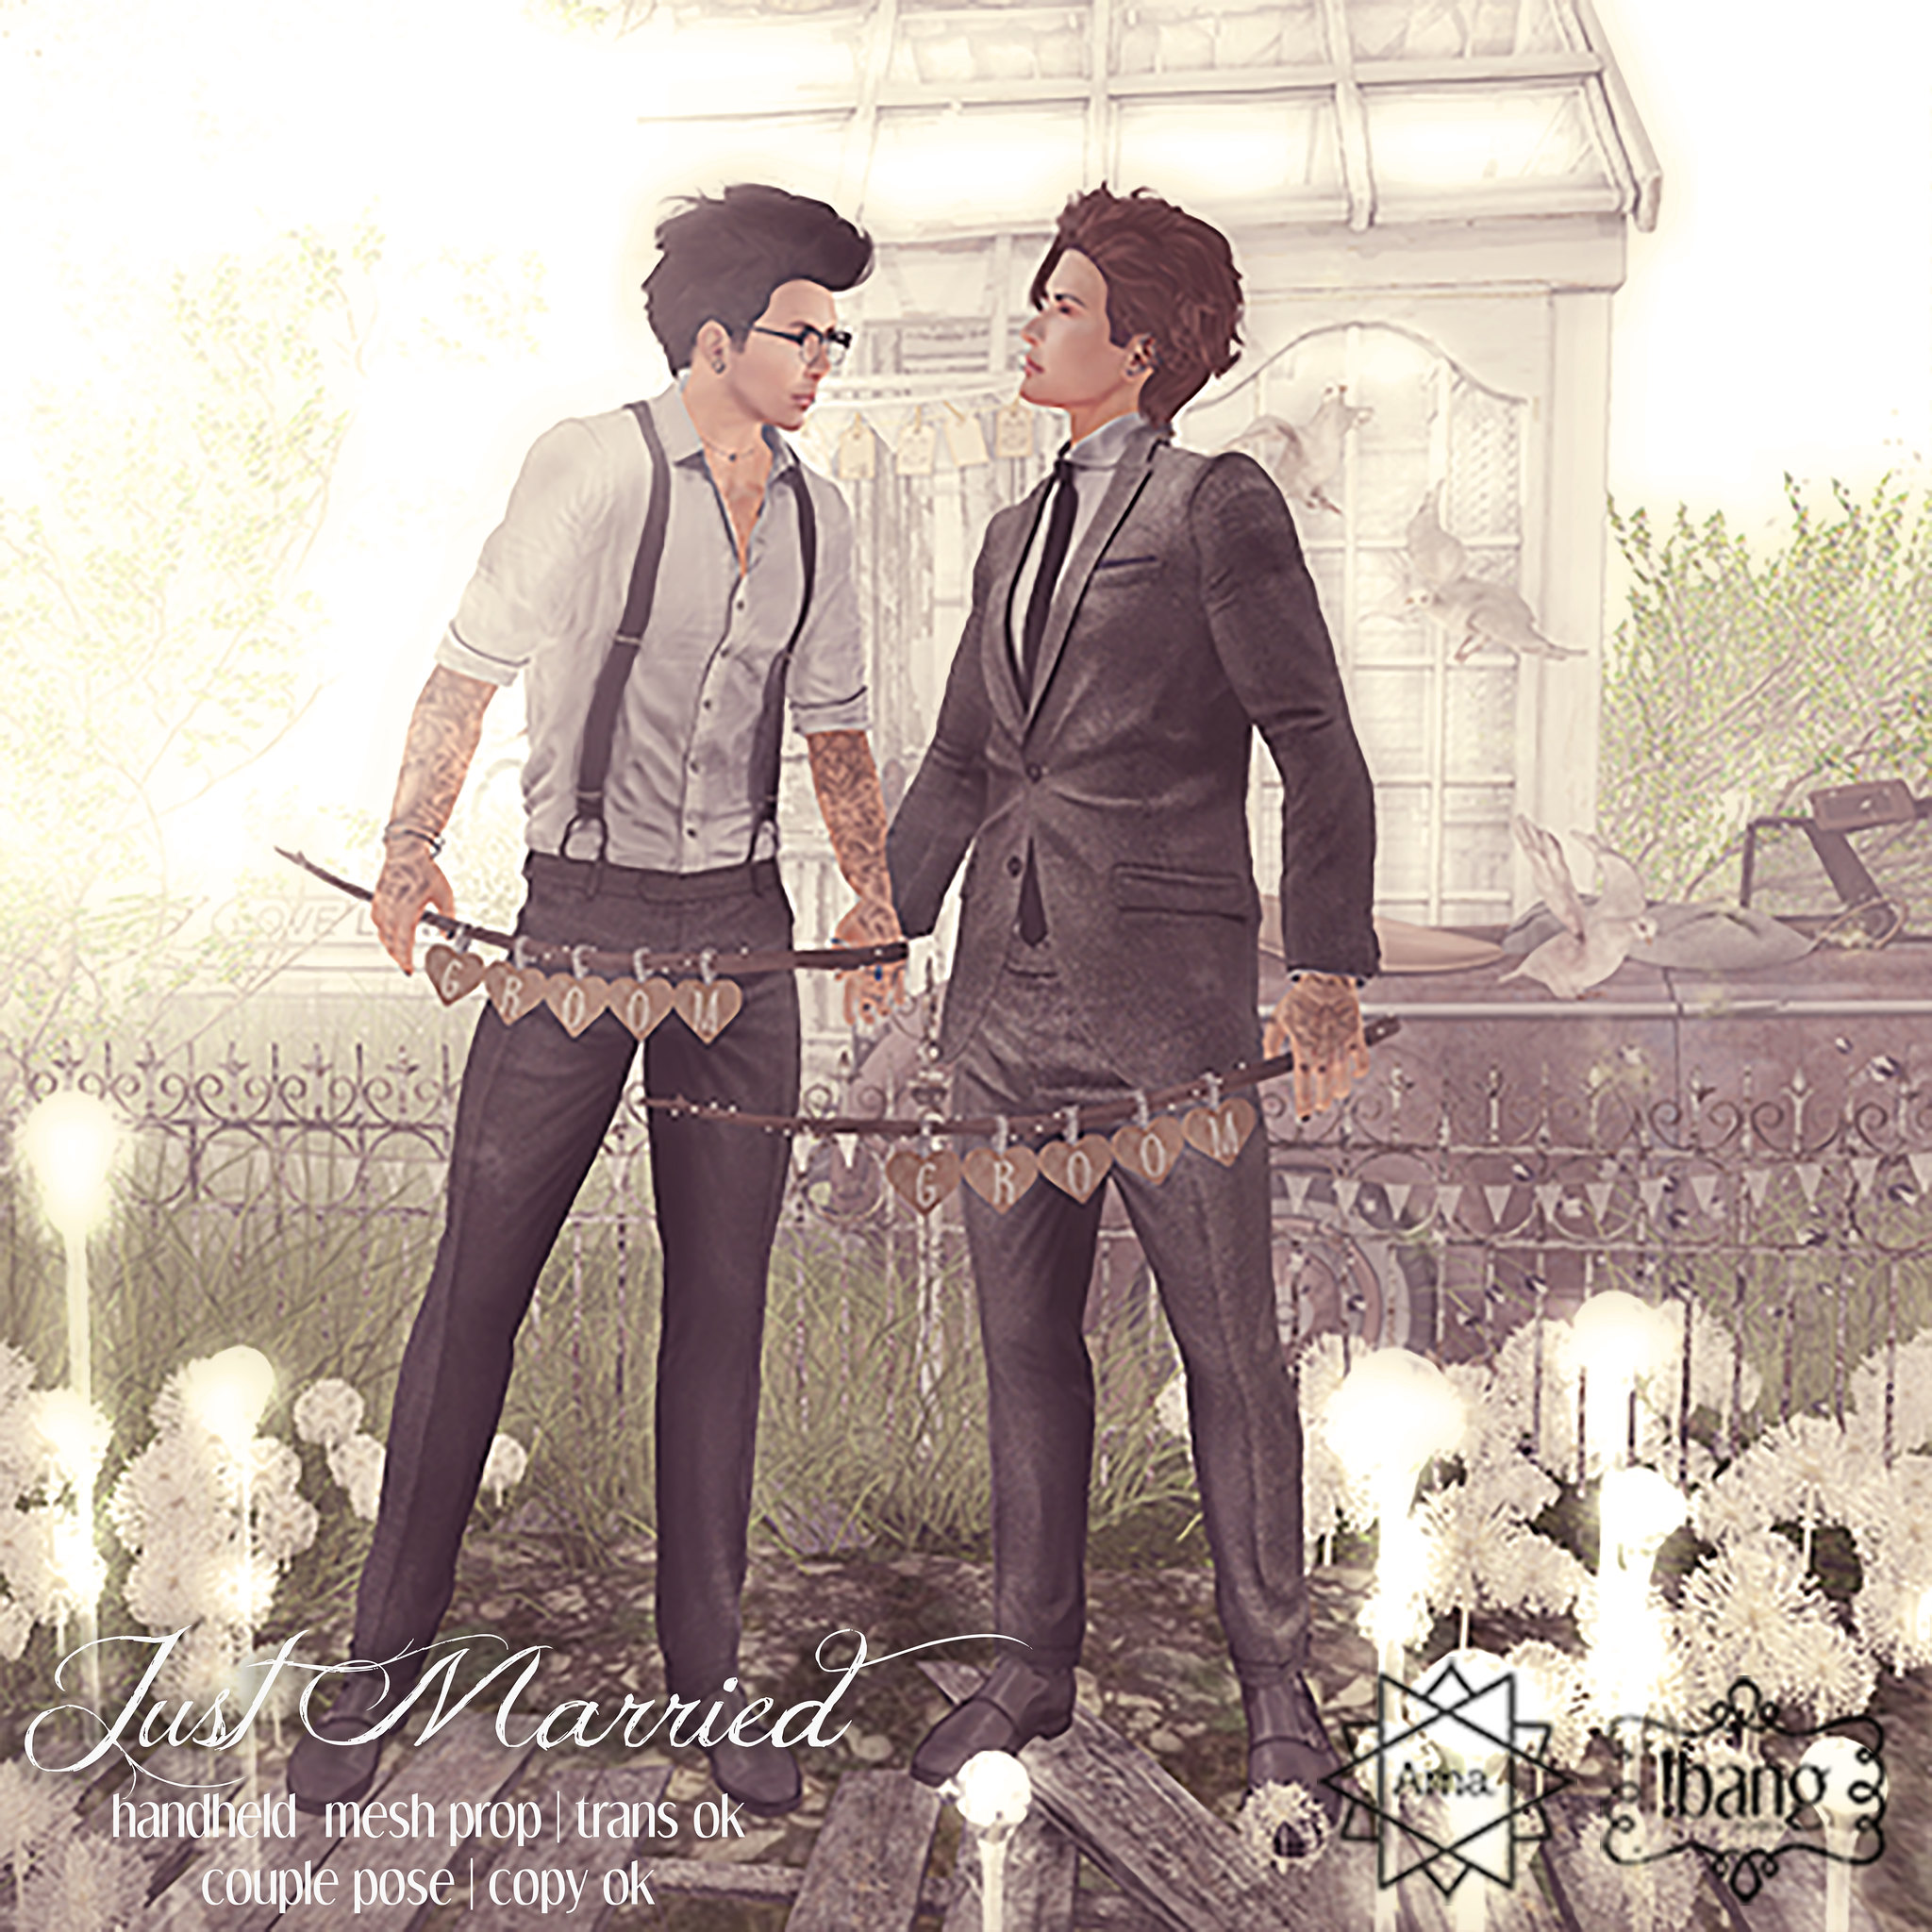 Ama. & !bang - just married MM